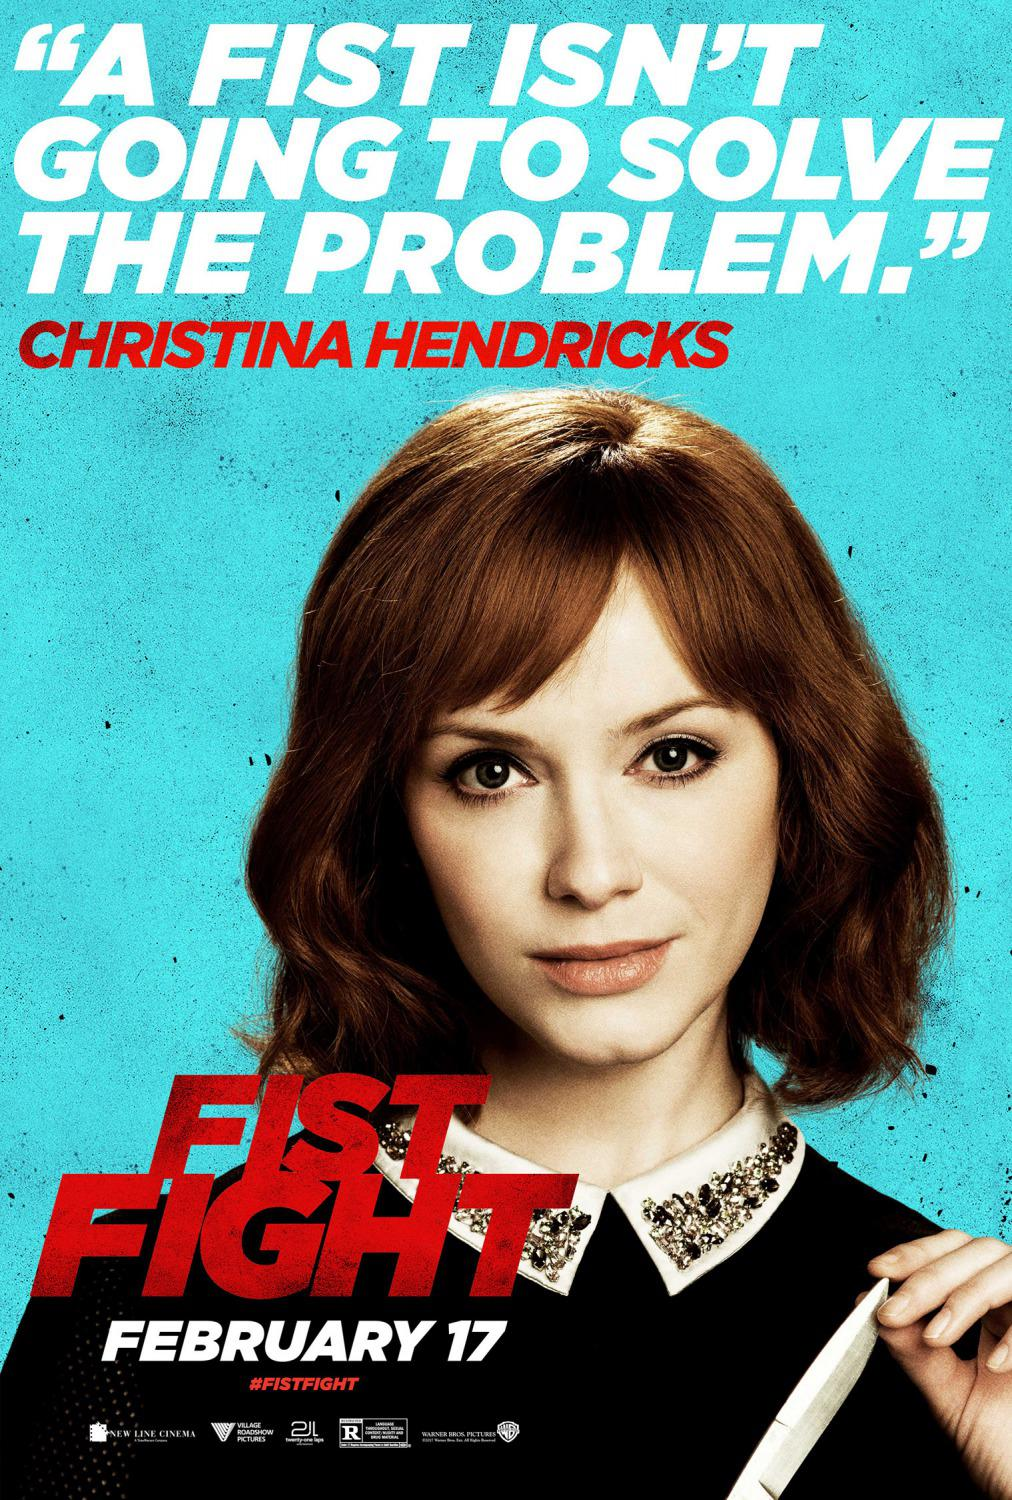 Fist Fight - A fist isn't going to solve the problem - Christina Hendricks